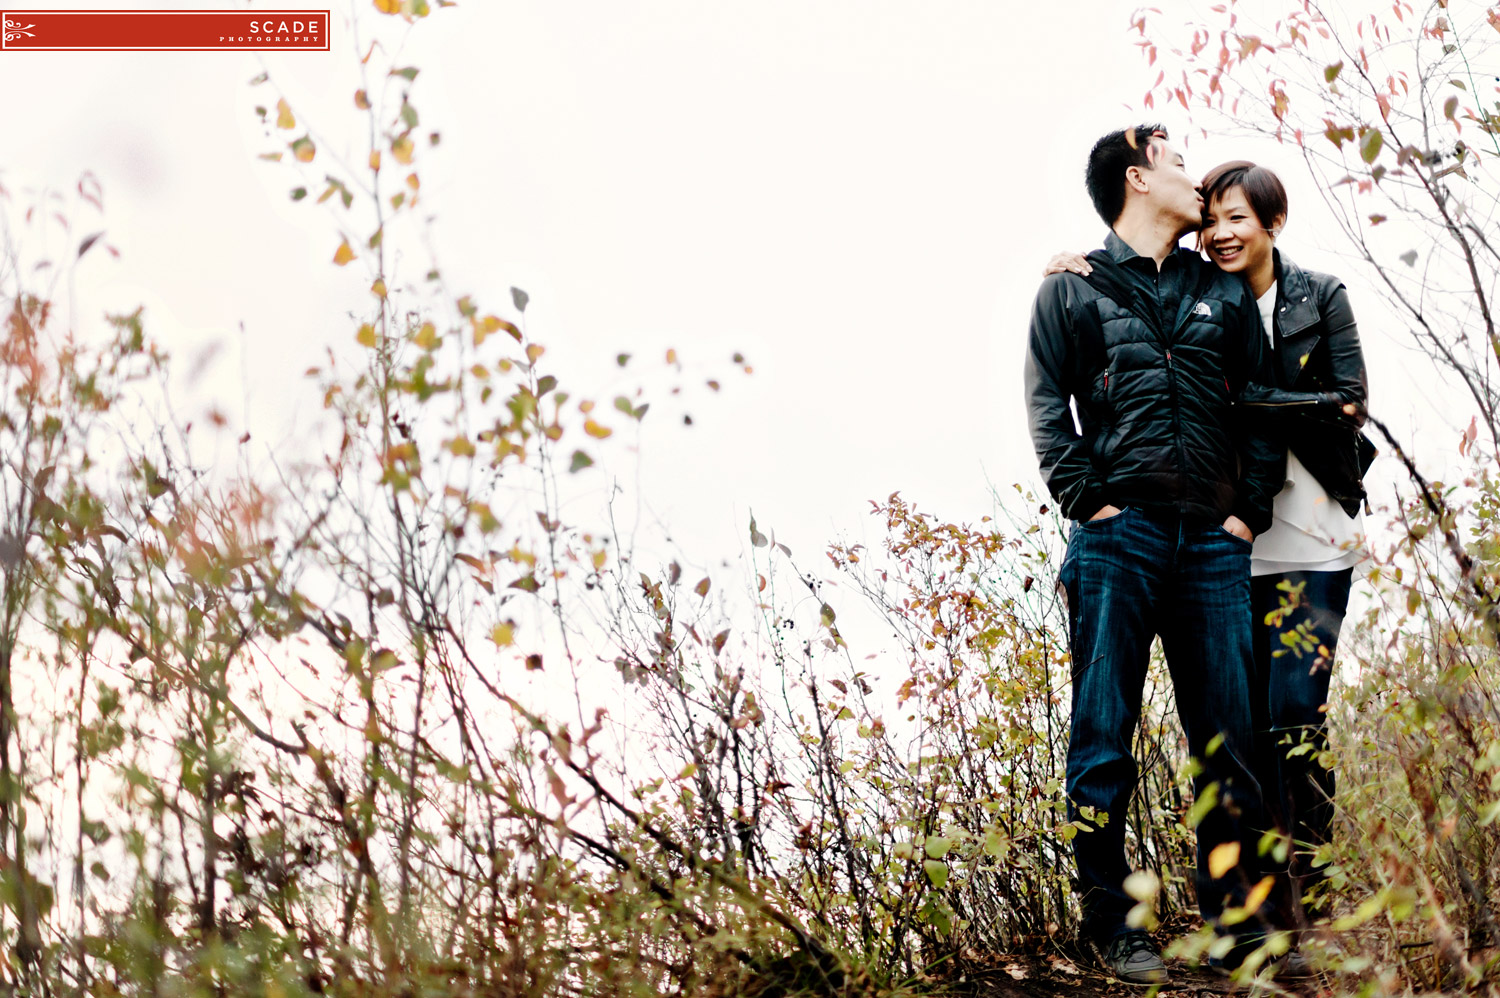 River Valley Couples Session - Dorothy and Dan - 0012.JPG